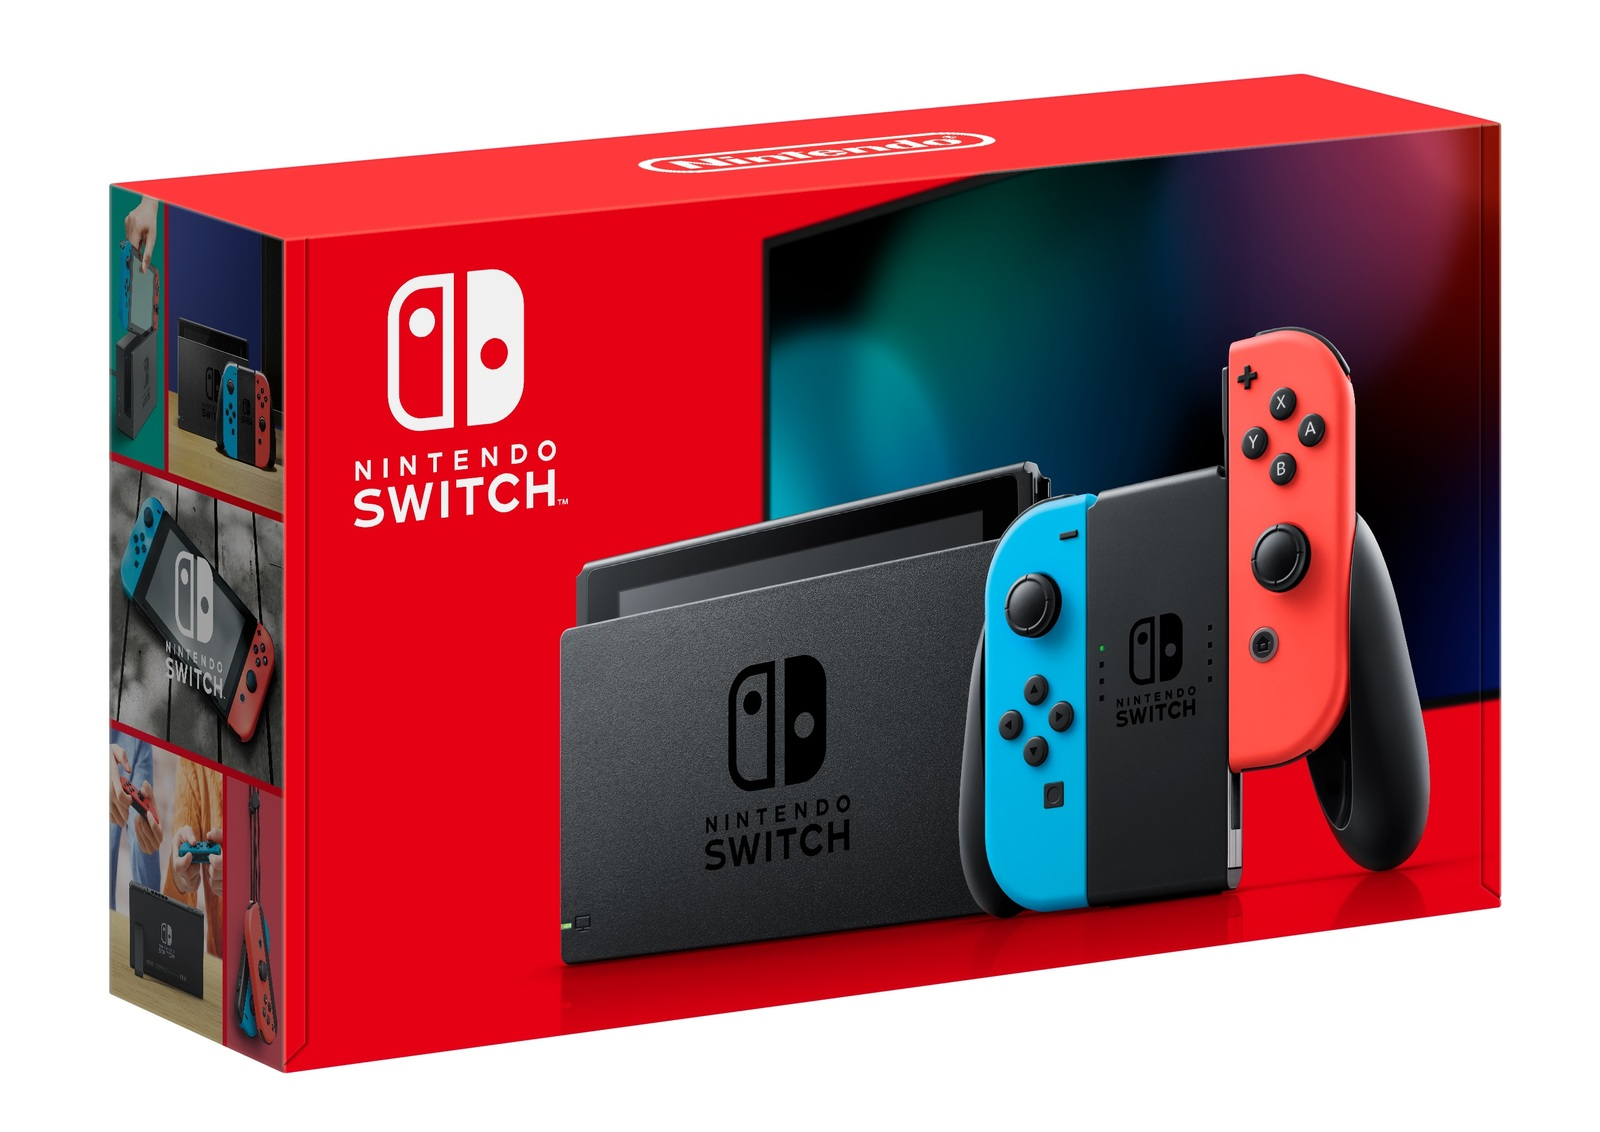 Nintendo Switch Neon Console for Switch image